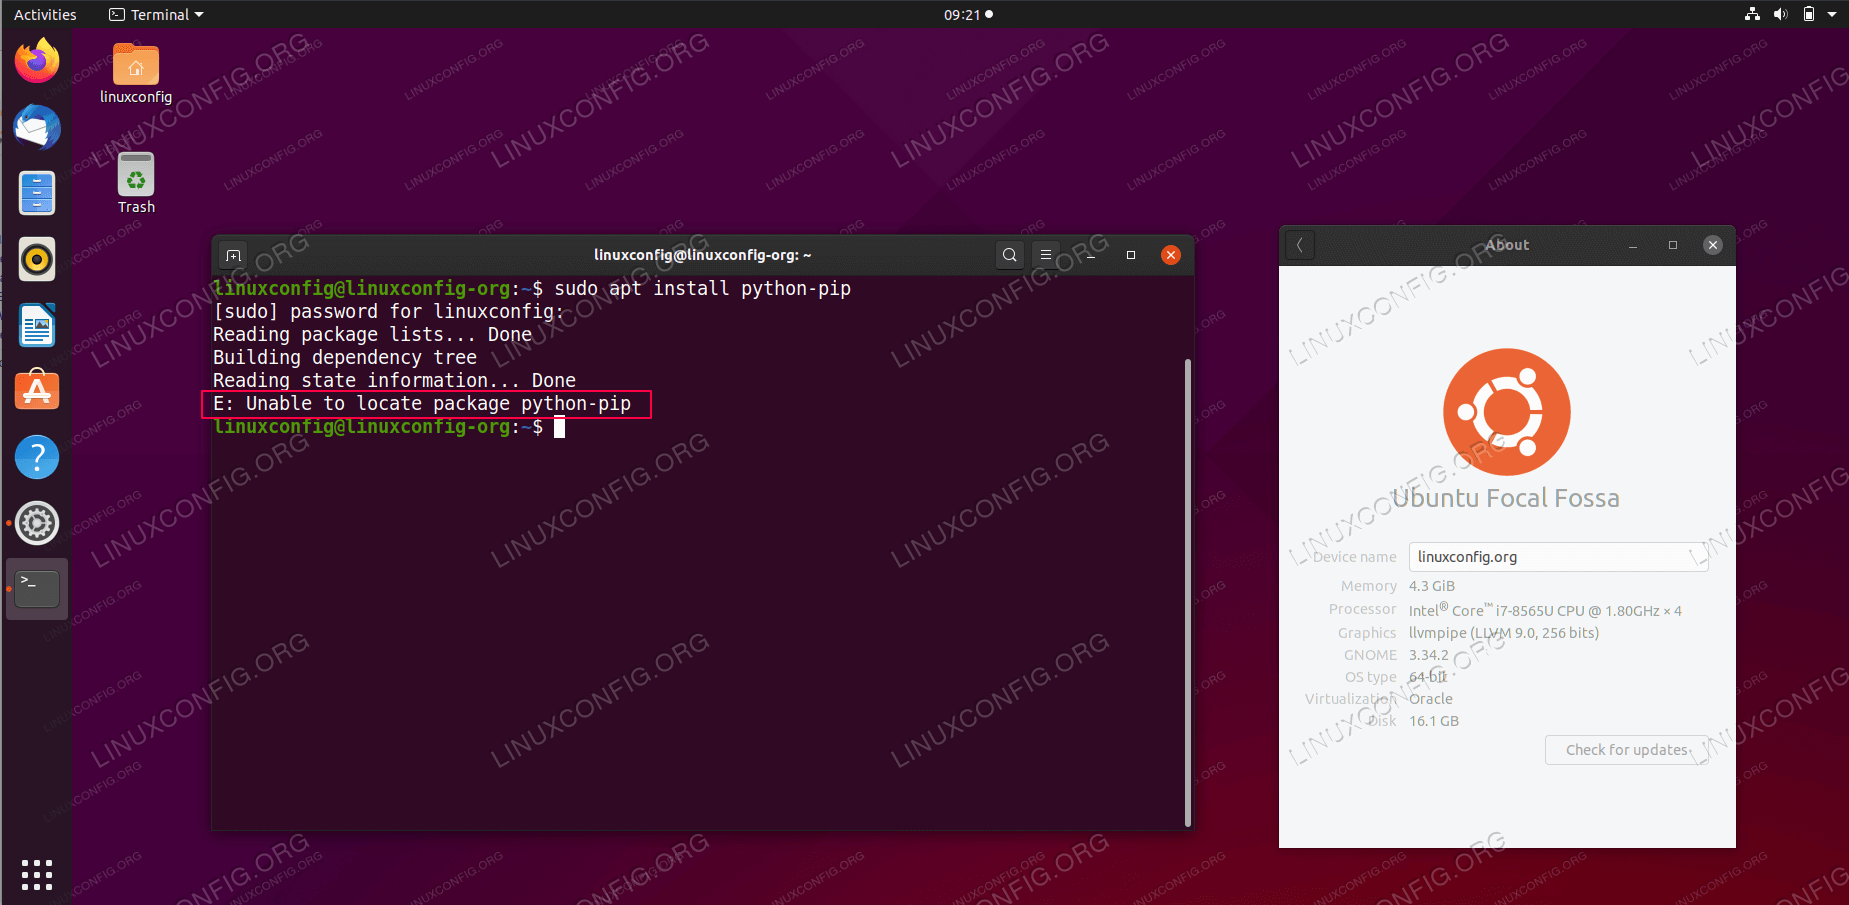 Unable to locate package error on Ubuntu 20.04 Focal Fossa Linux